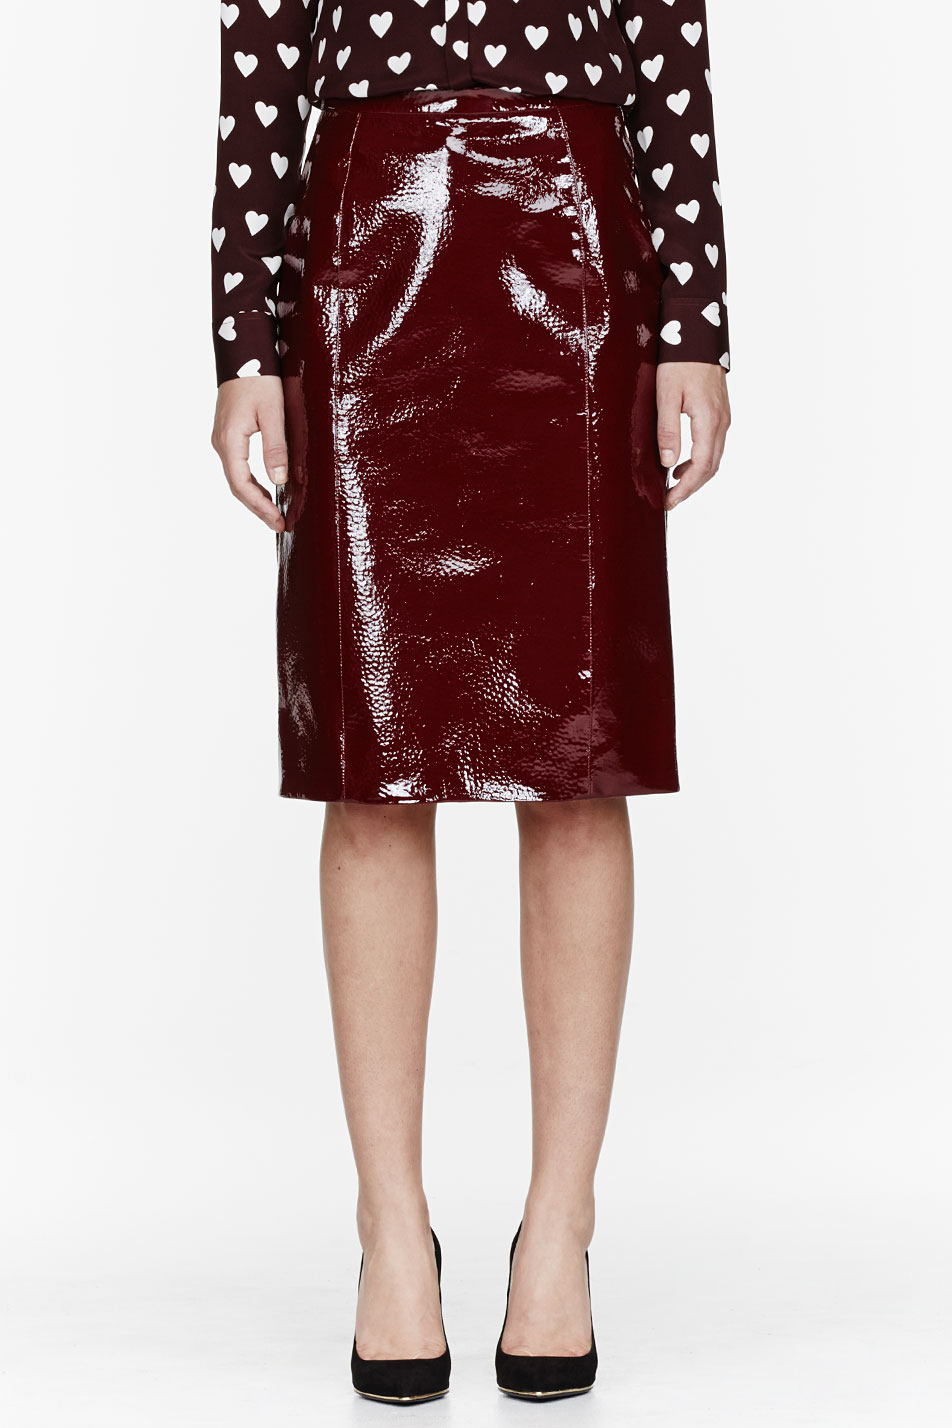 burberry prorsum red patent leather and silk skirt